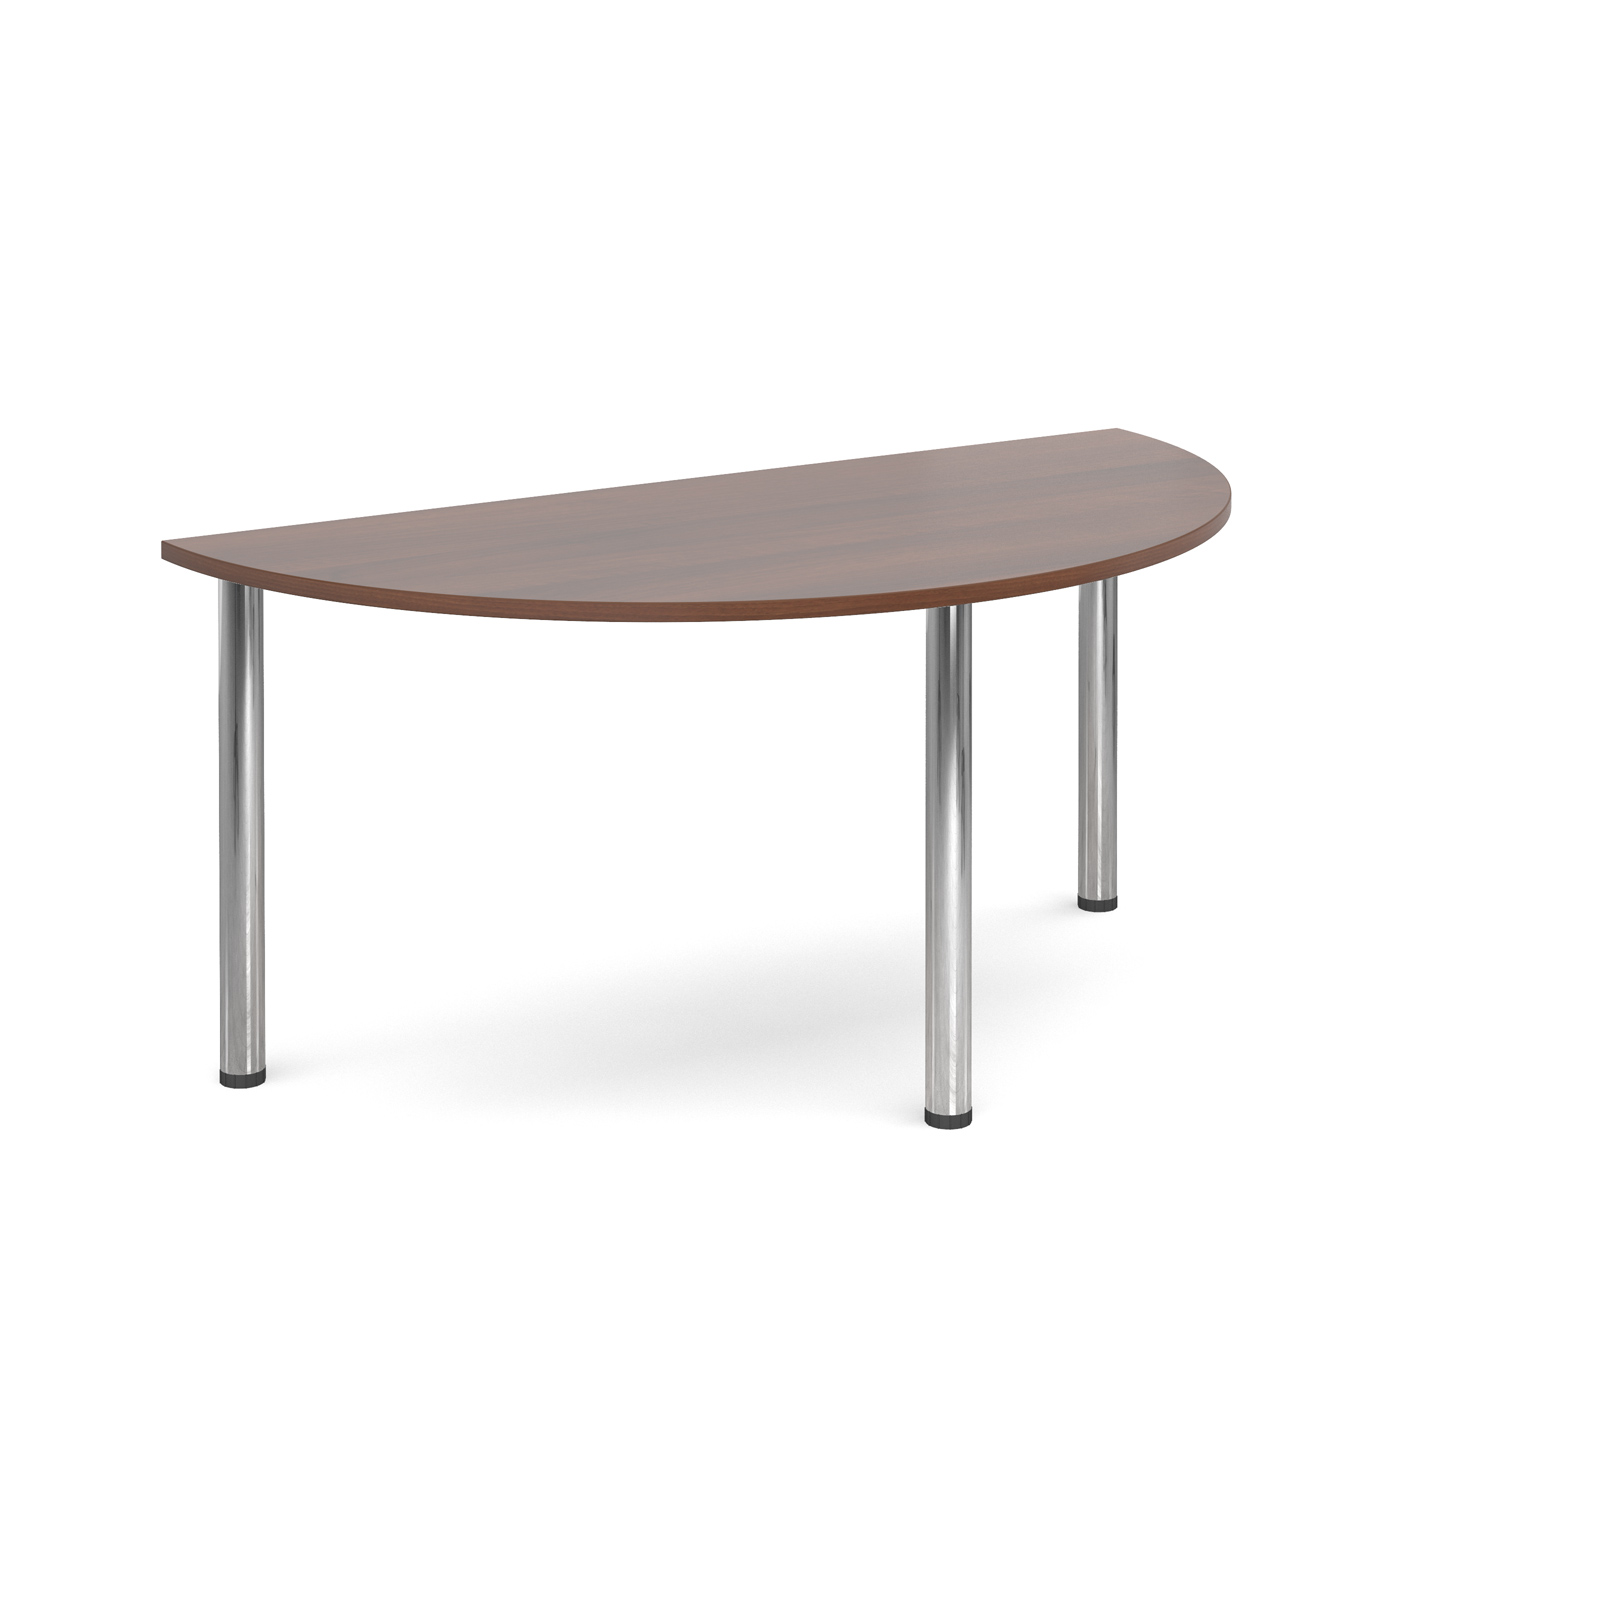 Semi circular deluxe chrome radial leg table 1600mm x 800mm - walnut